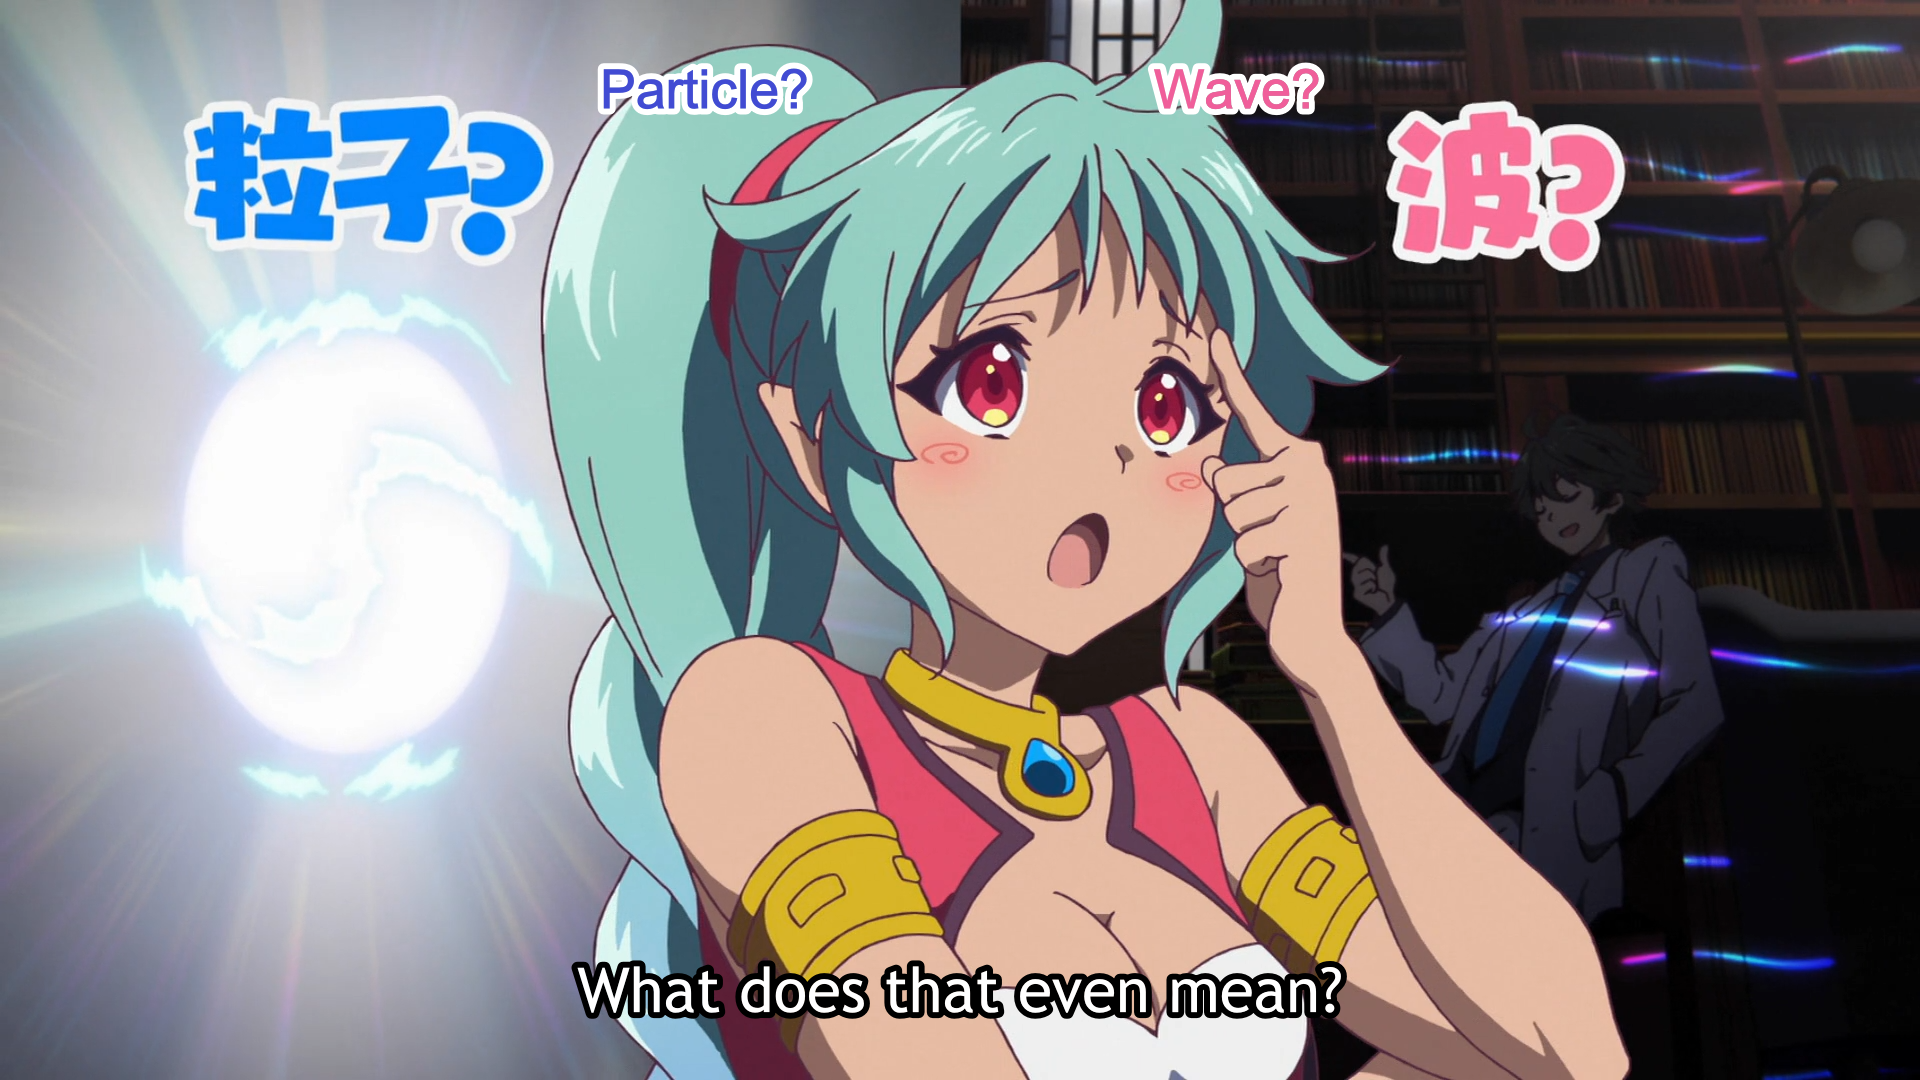 Ruru is baffled by the Schrödinger's Cat thought experiment while Haruhiko attempts to clarify in the background in a scene from the 2016 Myriad Colors Phantom World TV anime.